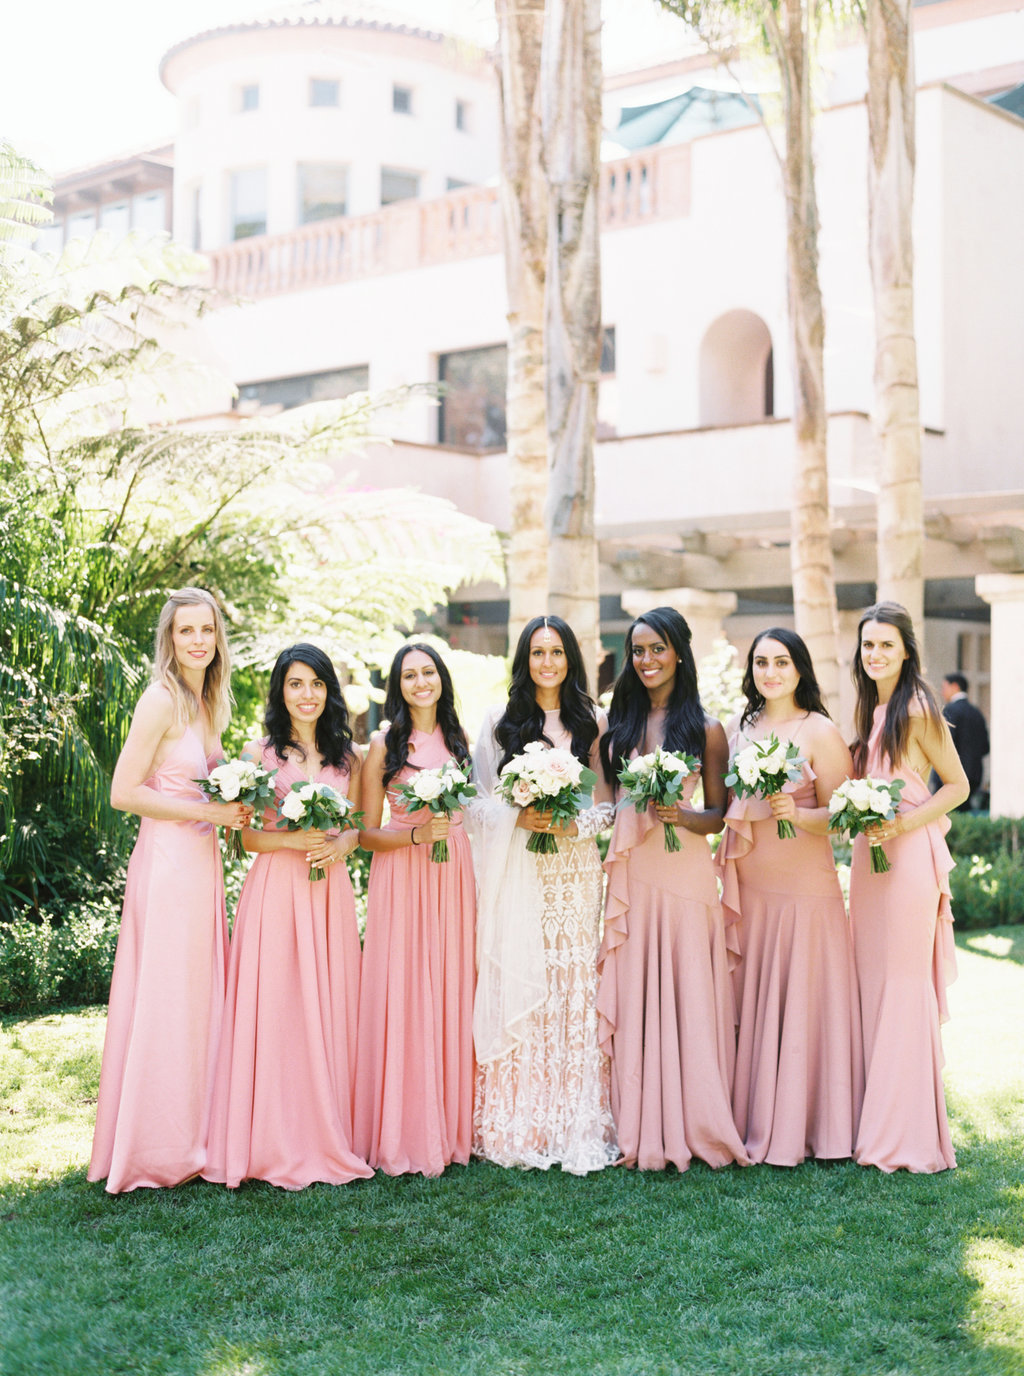 Bride and bridesmaids in pink dresses for wedding party photo at Butterfly Lane Estate